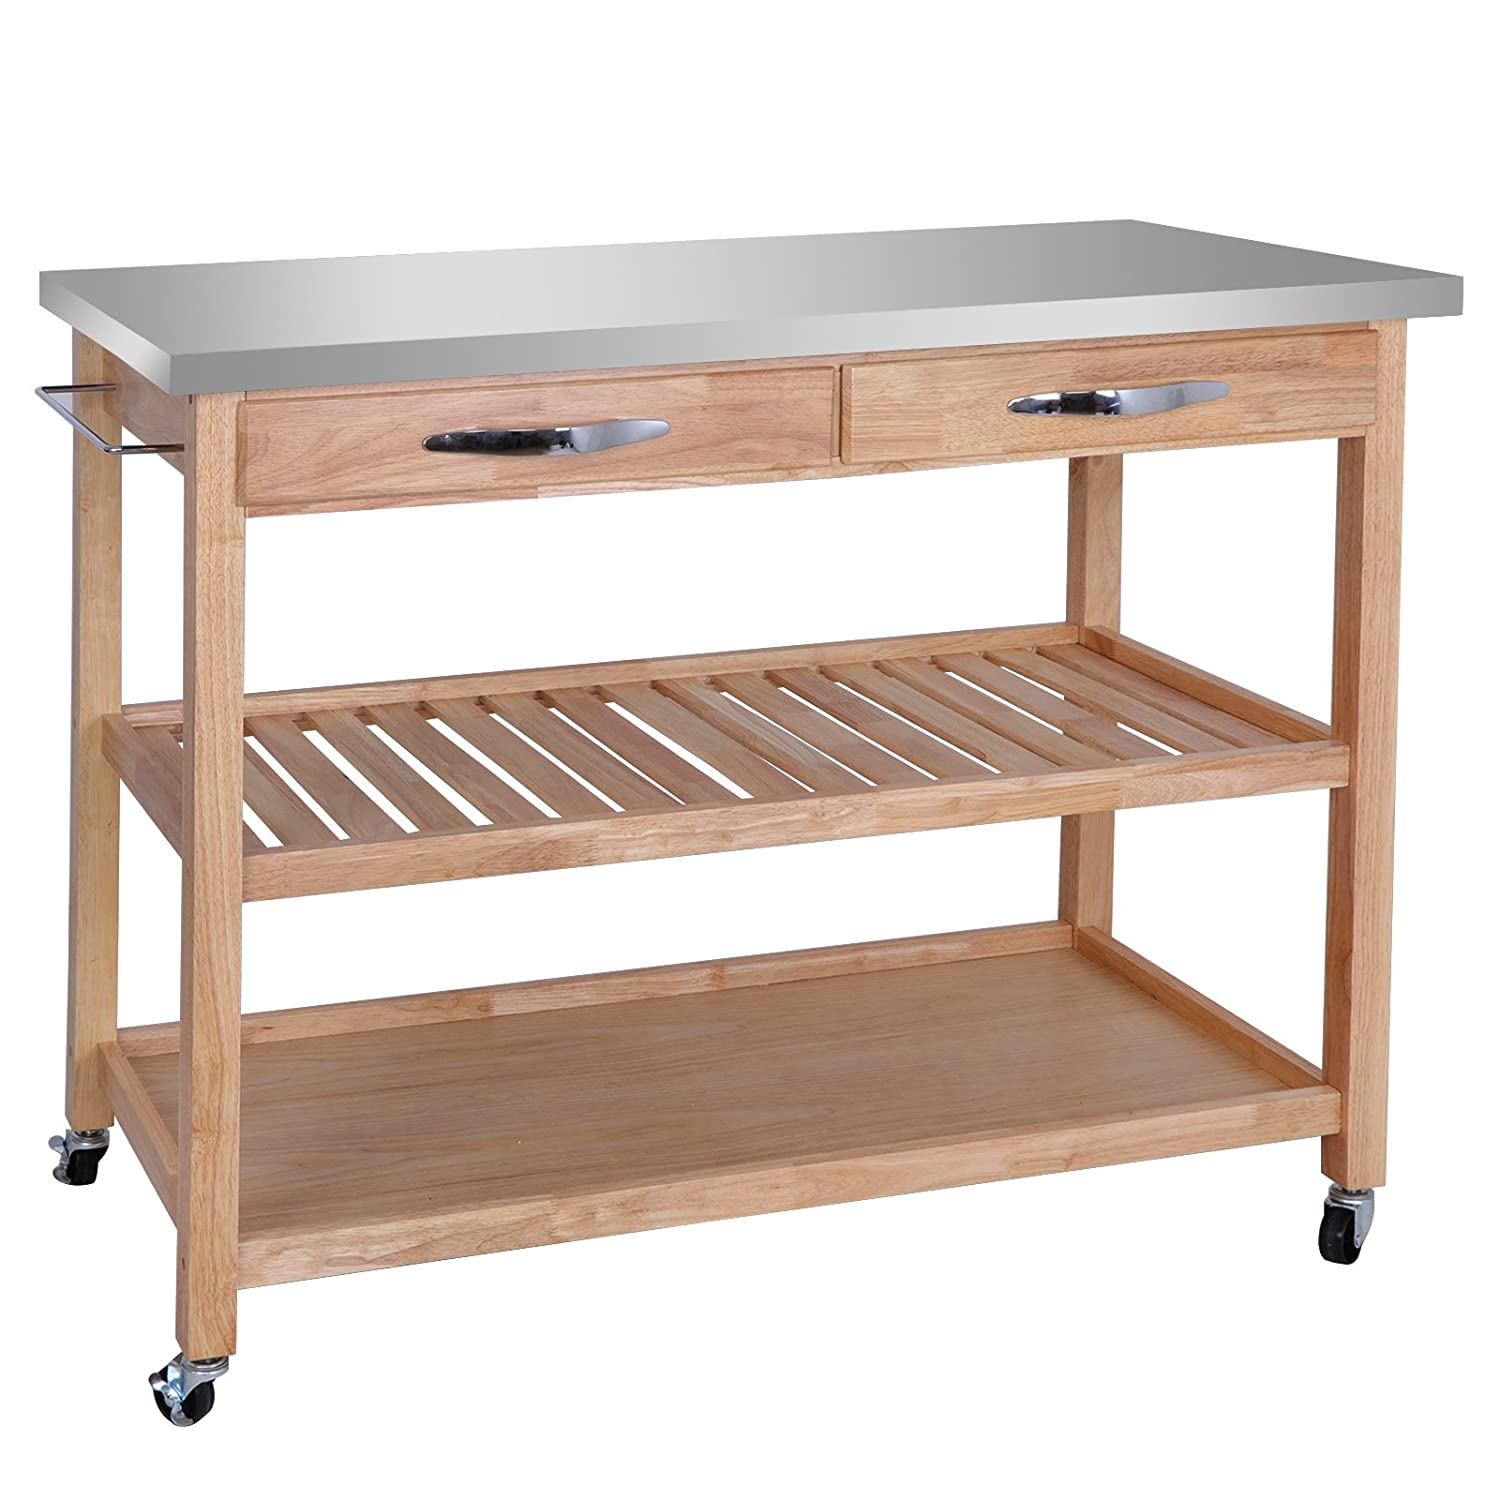 ZenStyle 3-Tier Rolling Kitchen Island Utility Wood Serving Cart Stainless Steel Countertop Kitchen Storage Cart w Shelves, Drawers, Towel Rack